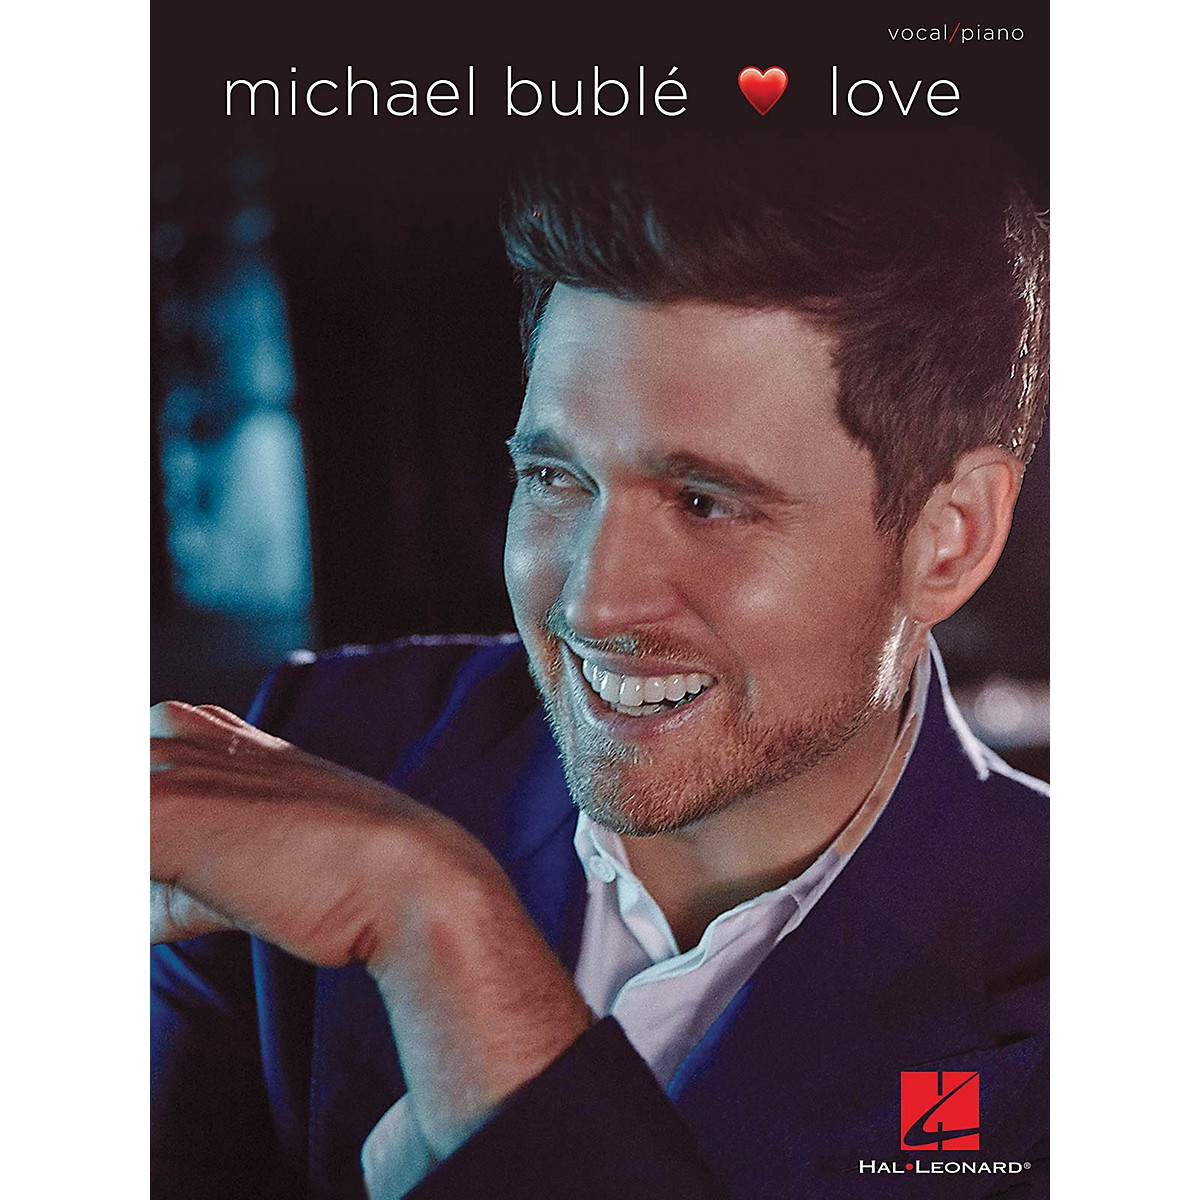 Hal Leonard Michael Bublé - Love Vocal/Piano Songbook